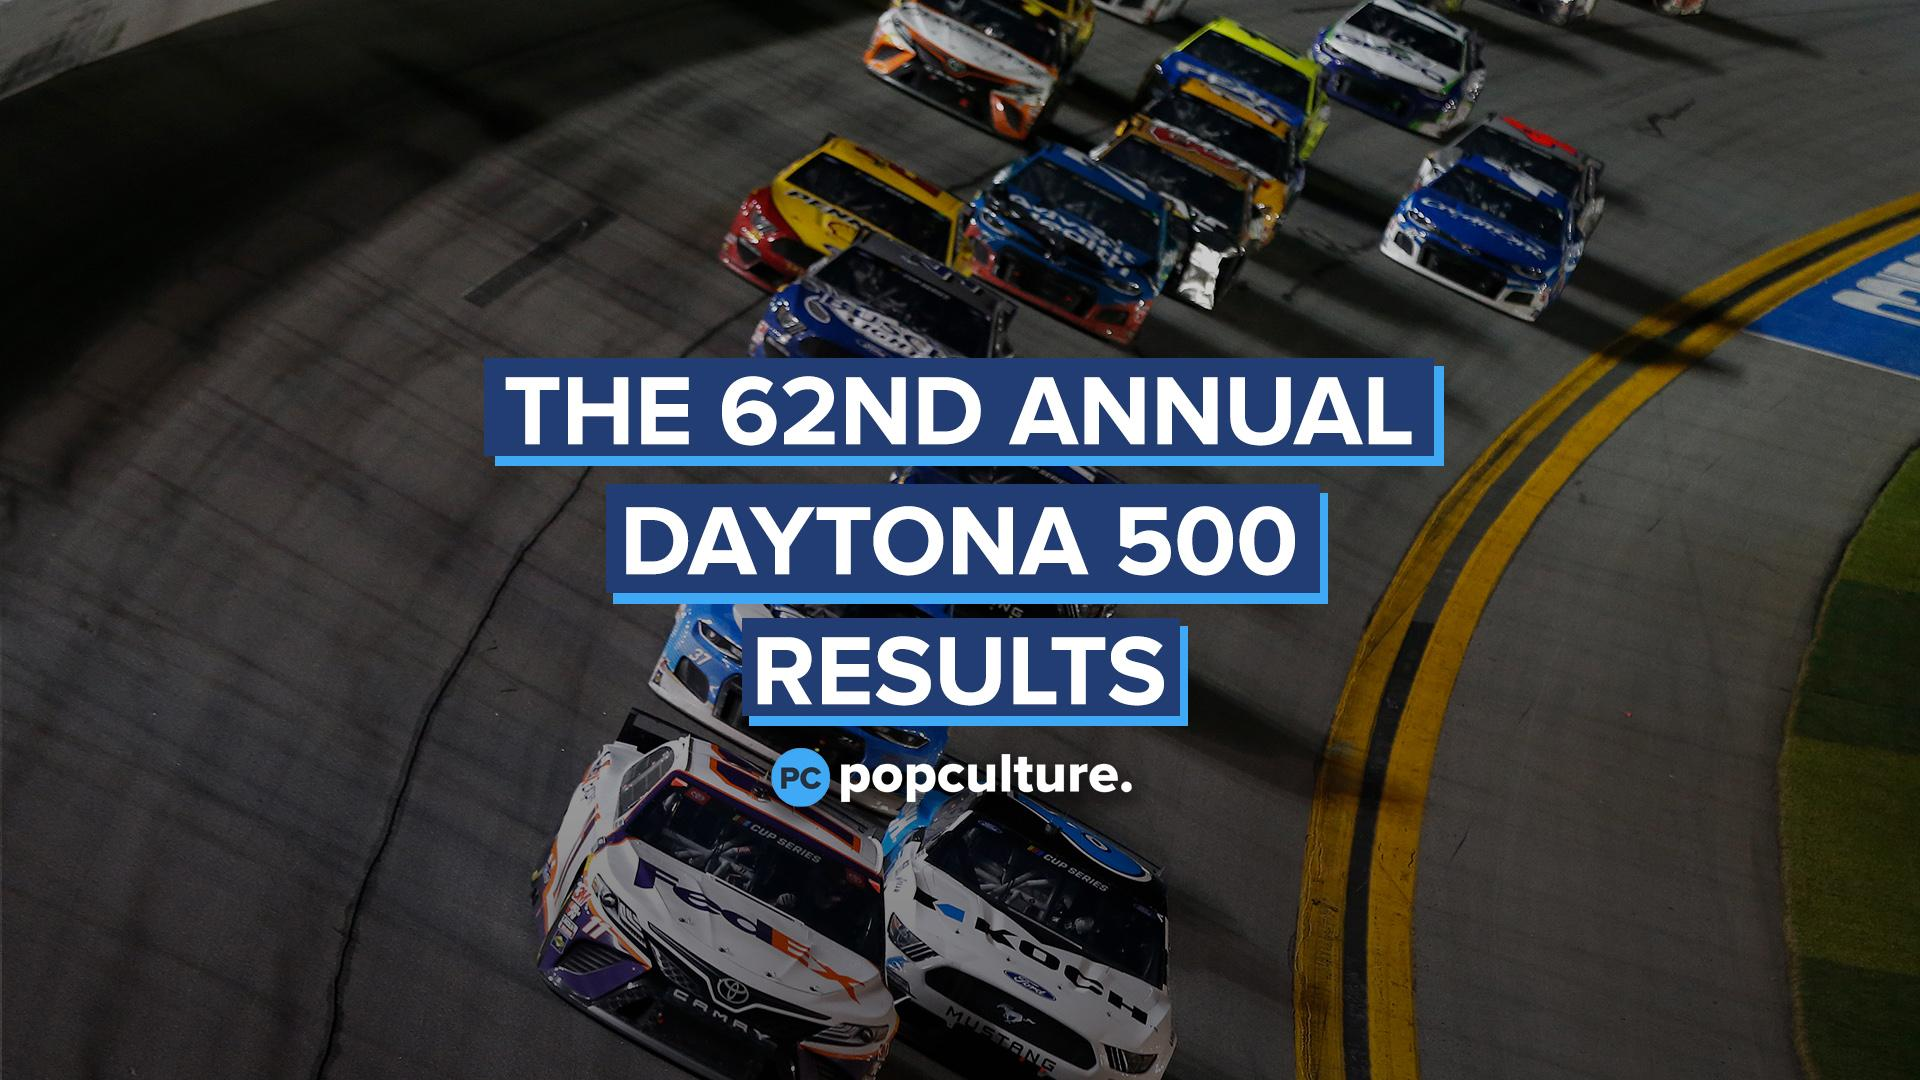 The 62nd Annual Daytona 500 Results - Denny Hamlin Wins, Ryan Newman Crash Update screen capture